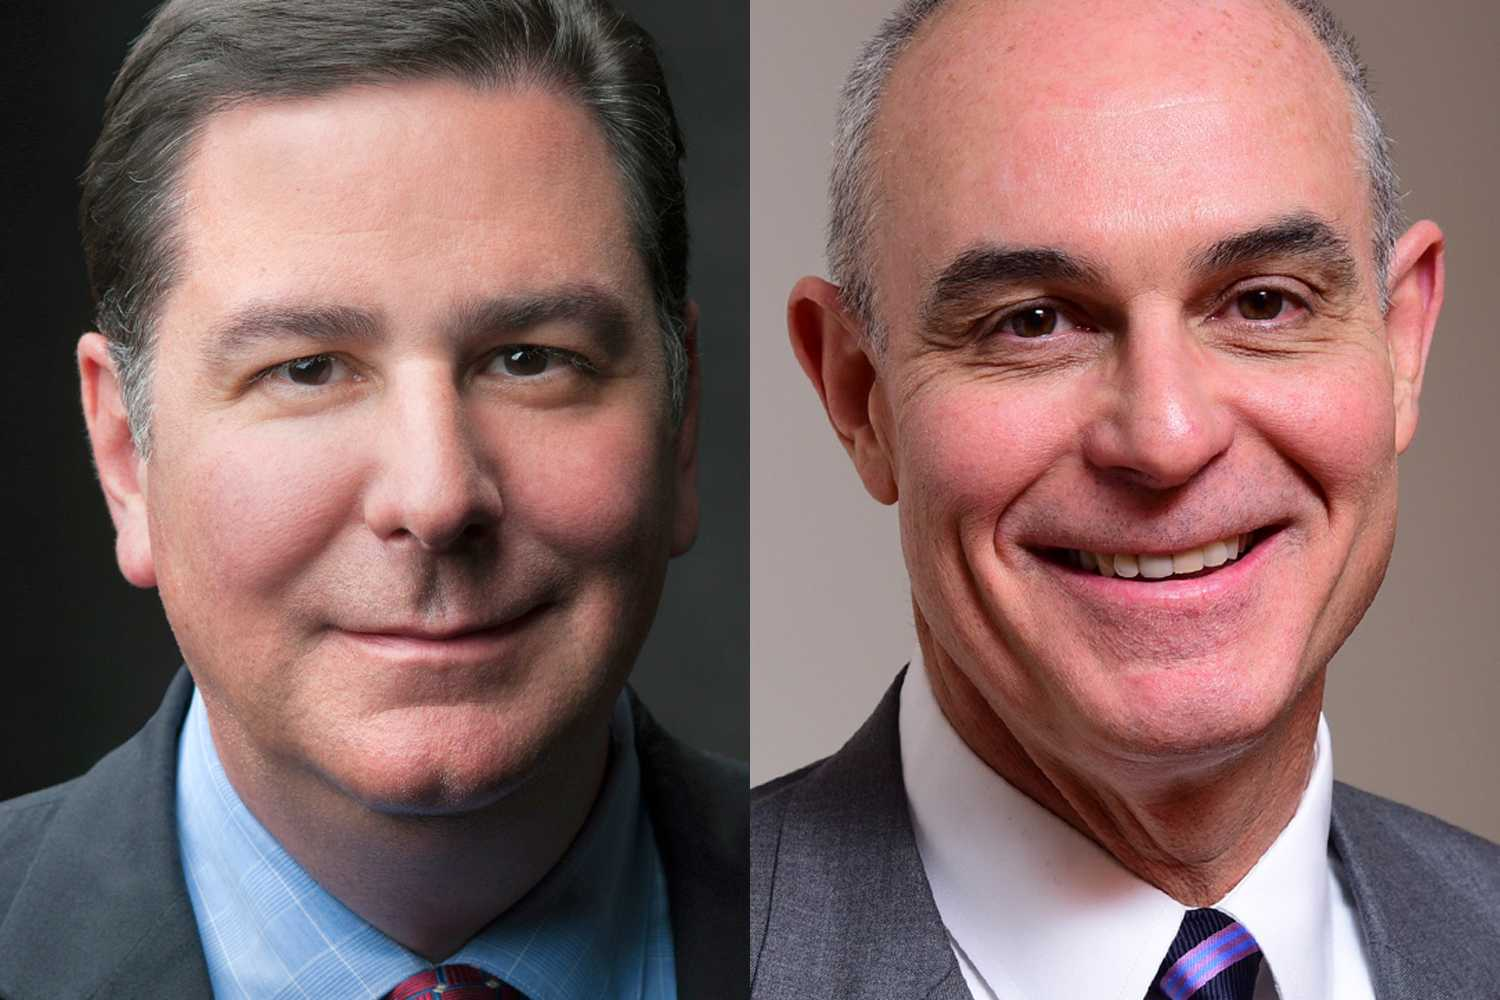 Pittsburgh mayor Bill Peduto (left) will speak at the undergraduate commencement ceremony, while appellate attorney and partner at Kellogg, Hansen, Todd, Figel & Frederick law firm, David C. Frederick (right), will speak at the master's, professional doctoral and doctoral degrees graduation. (Images via University of Pittsburgh)